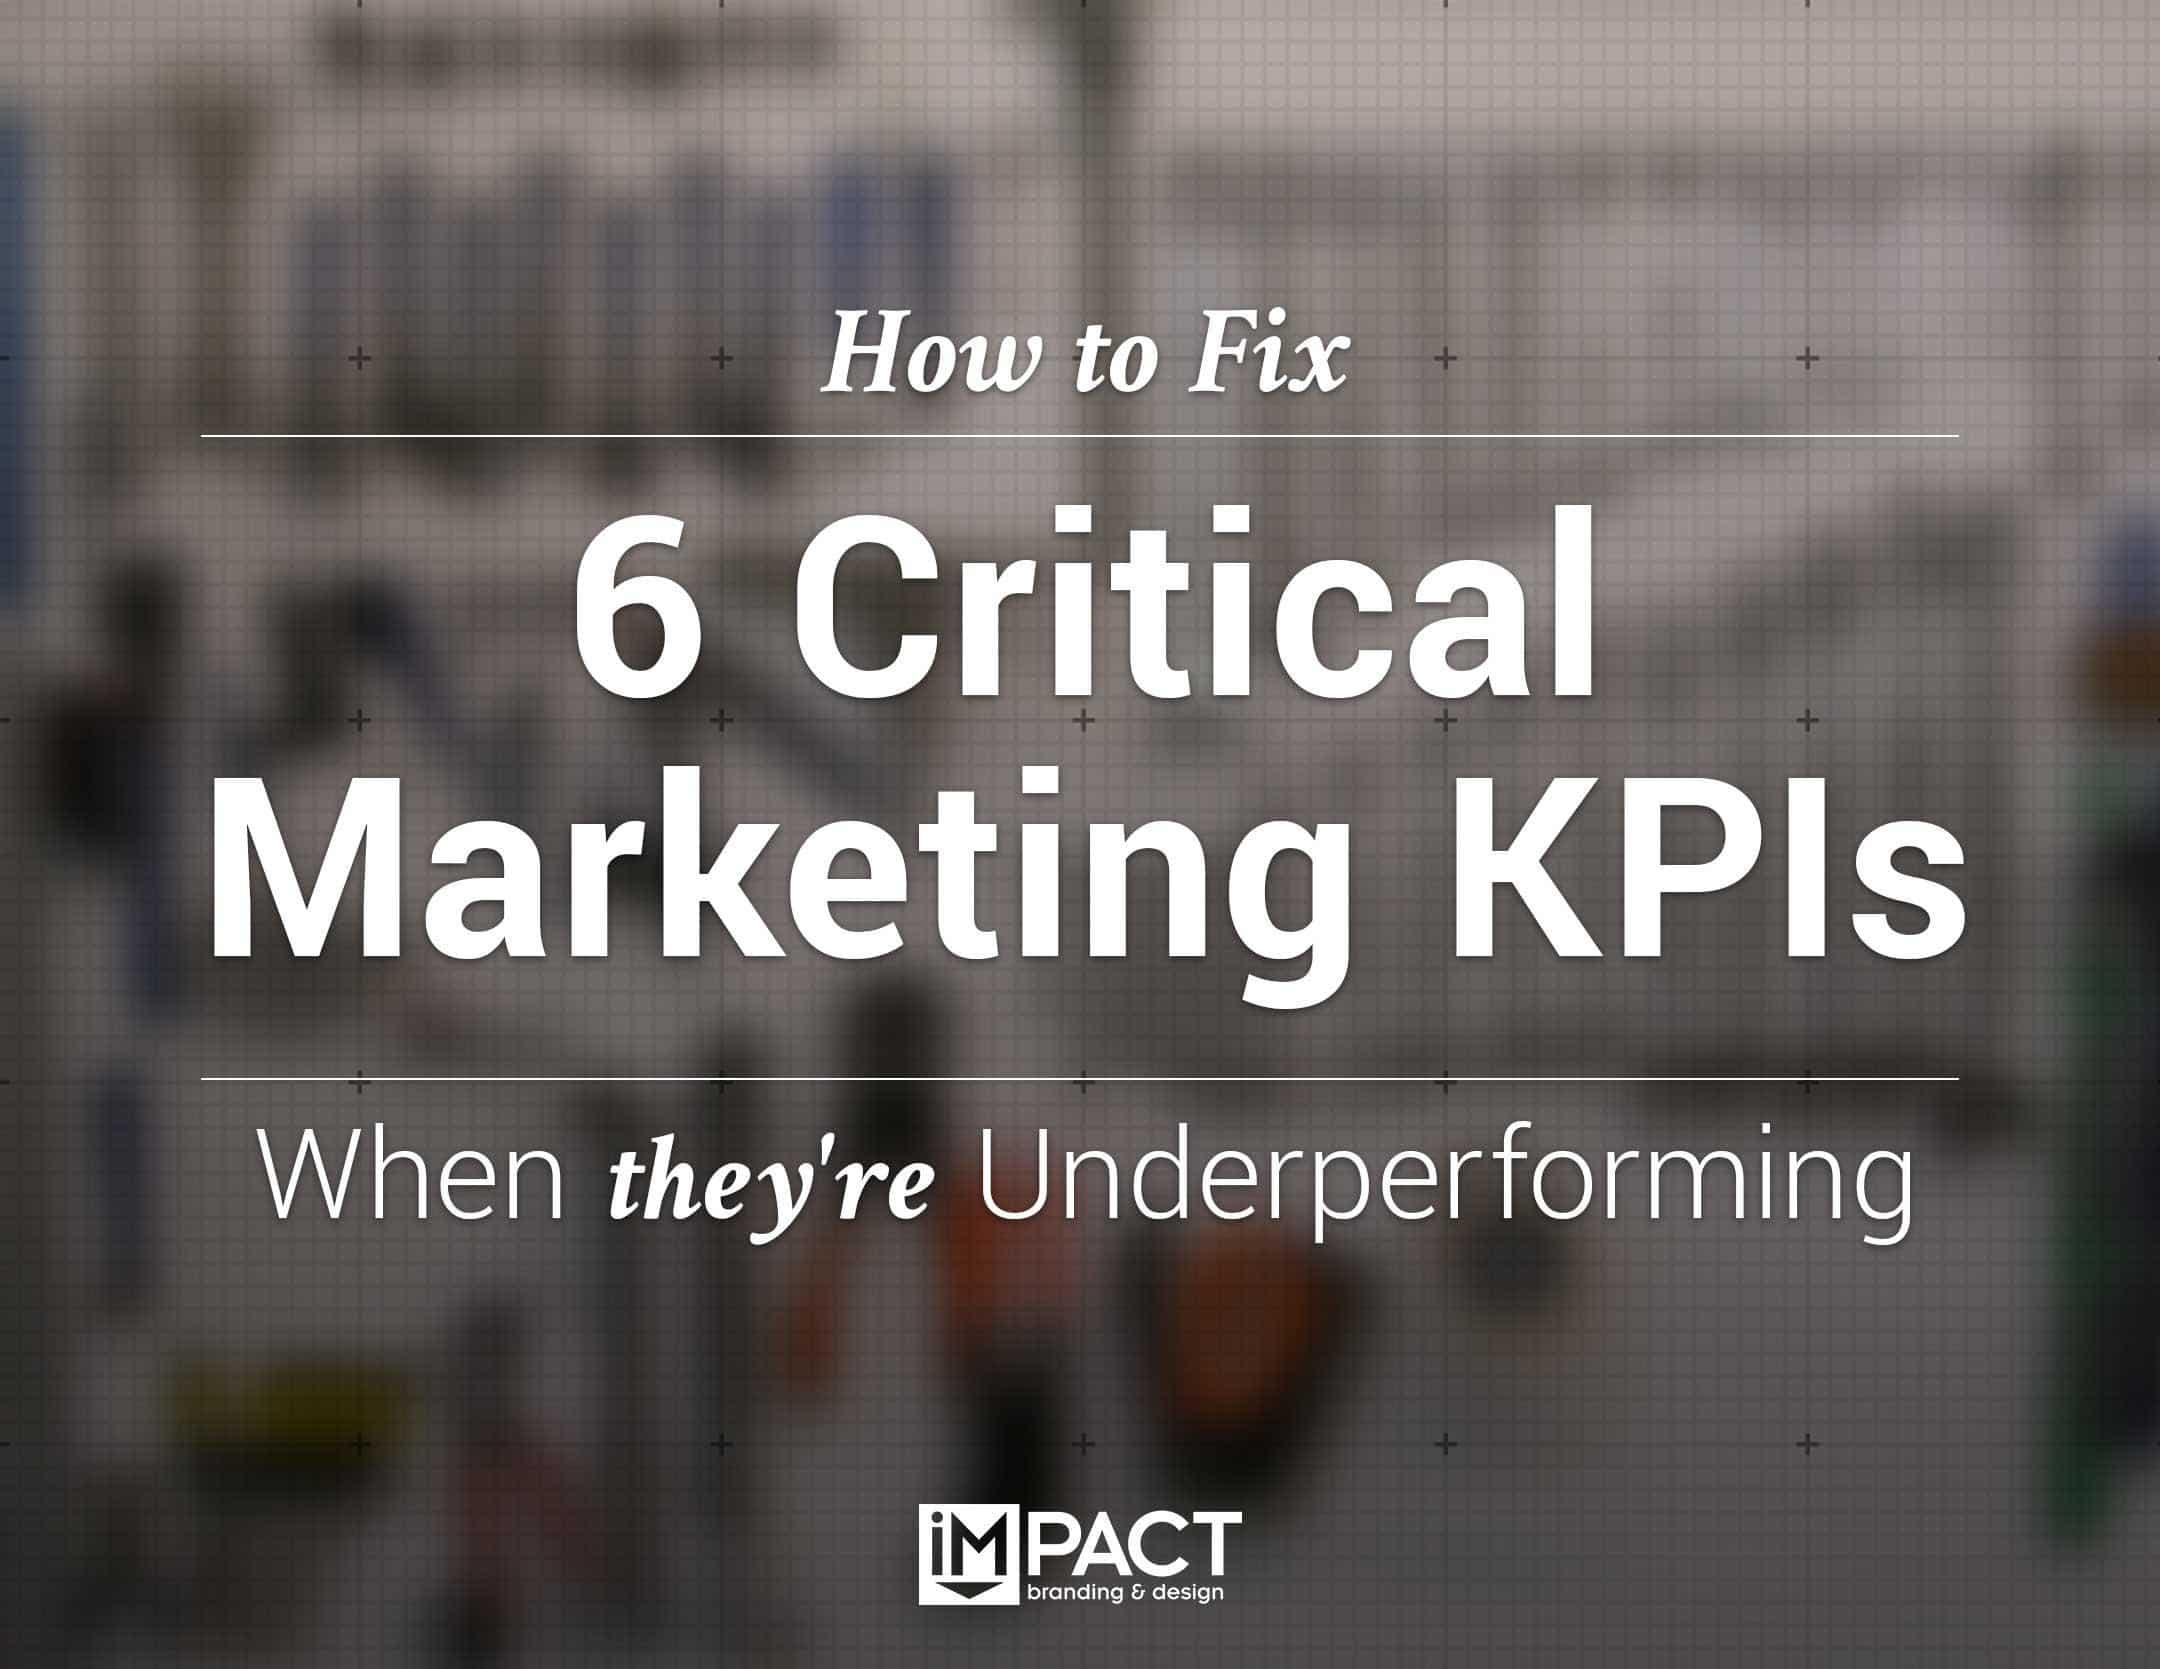 Free Ebook: How to Fix 6 Critical Marketing KPIs When They're Underperforming